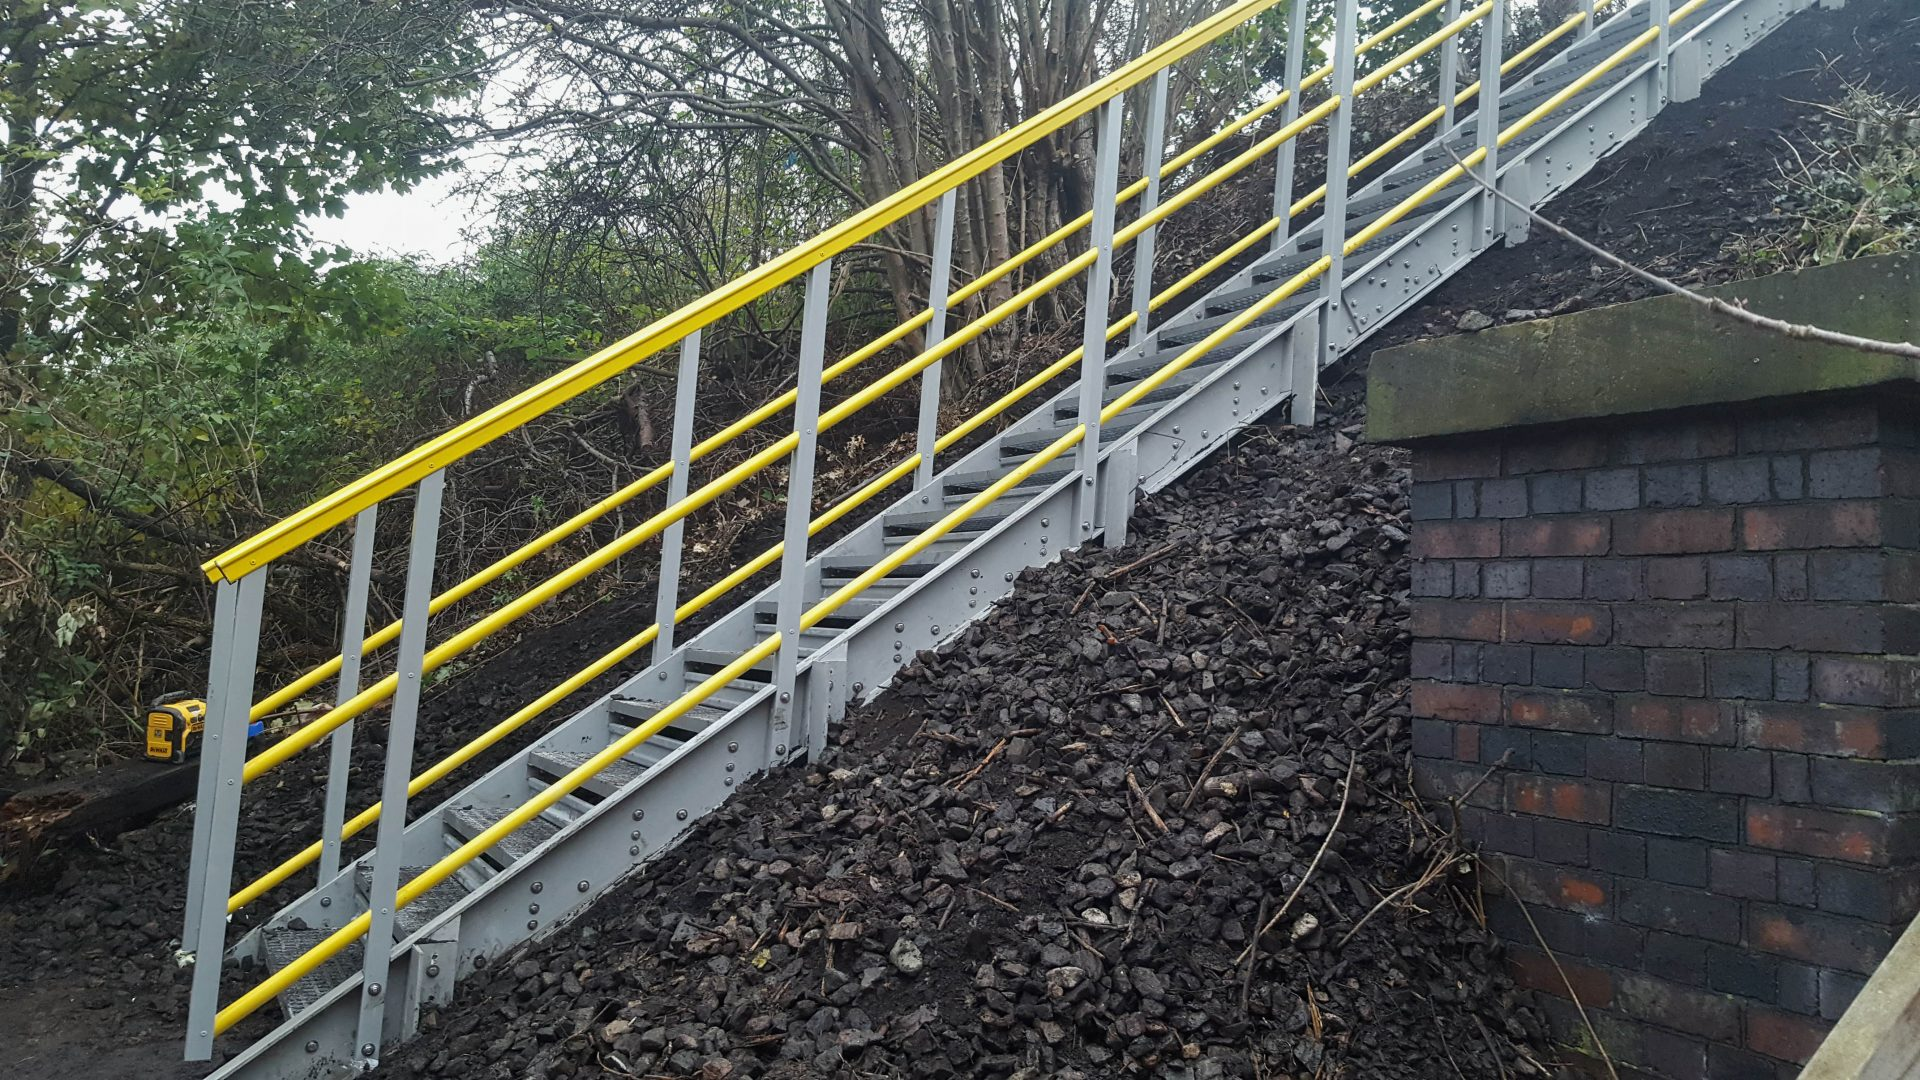 GRP embankment stairs for railway trackside access